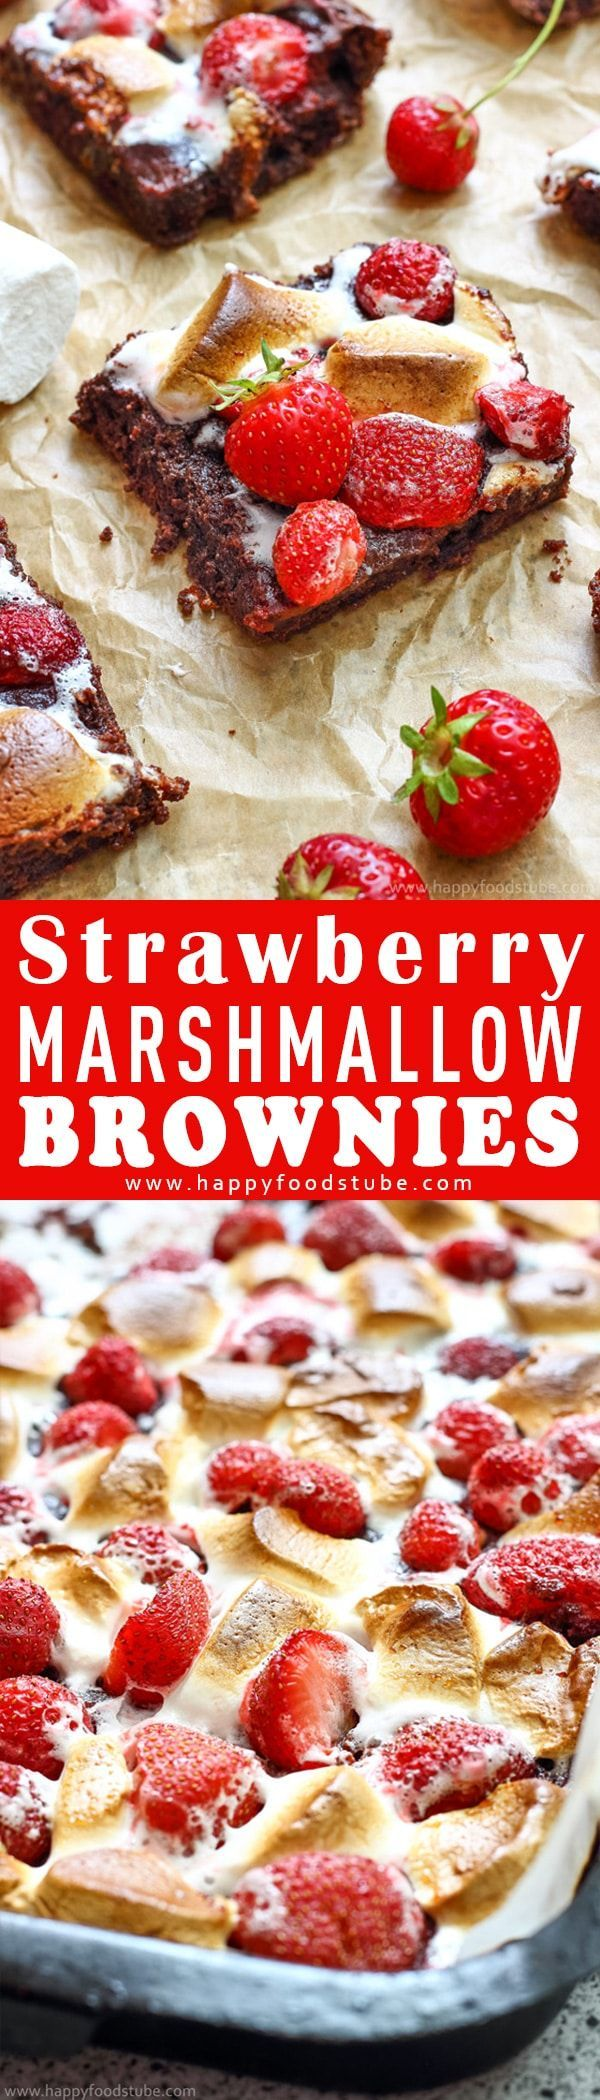 These Strawberry Marshmallow Brownies are the best brownies you'll ever eat! Rich and chewy on the inside and gooey on the outside. Easy to make dessert recipe. Best Strawberry Brownies from scratch via @happyfoodstube